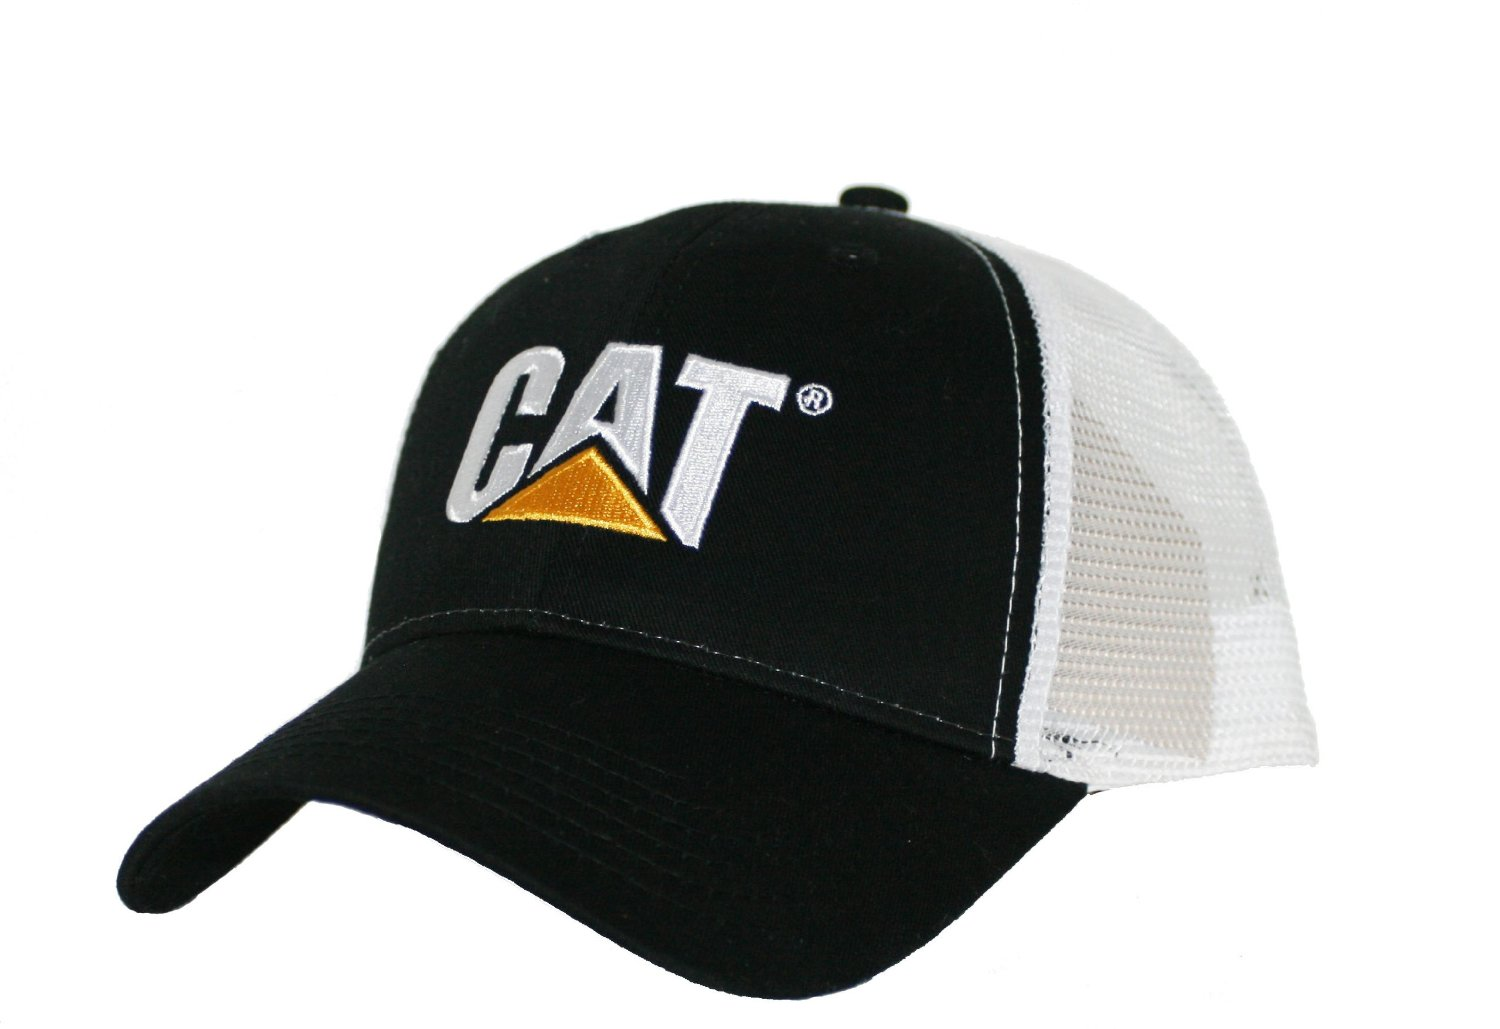 Caterpillar Cat Caps Cat Hats Caterpillar Cat Black